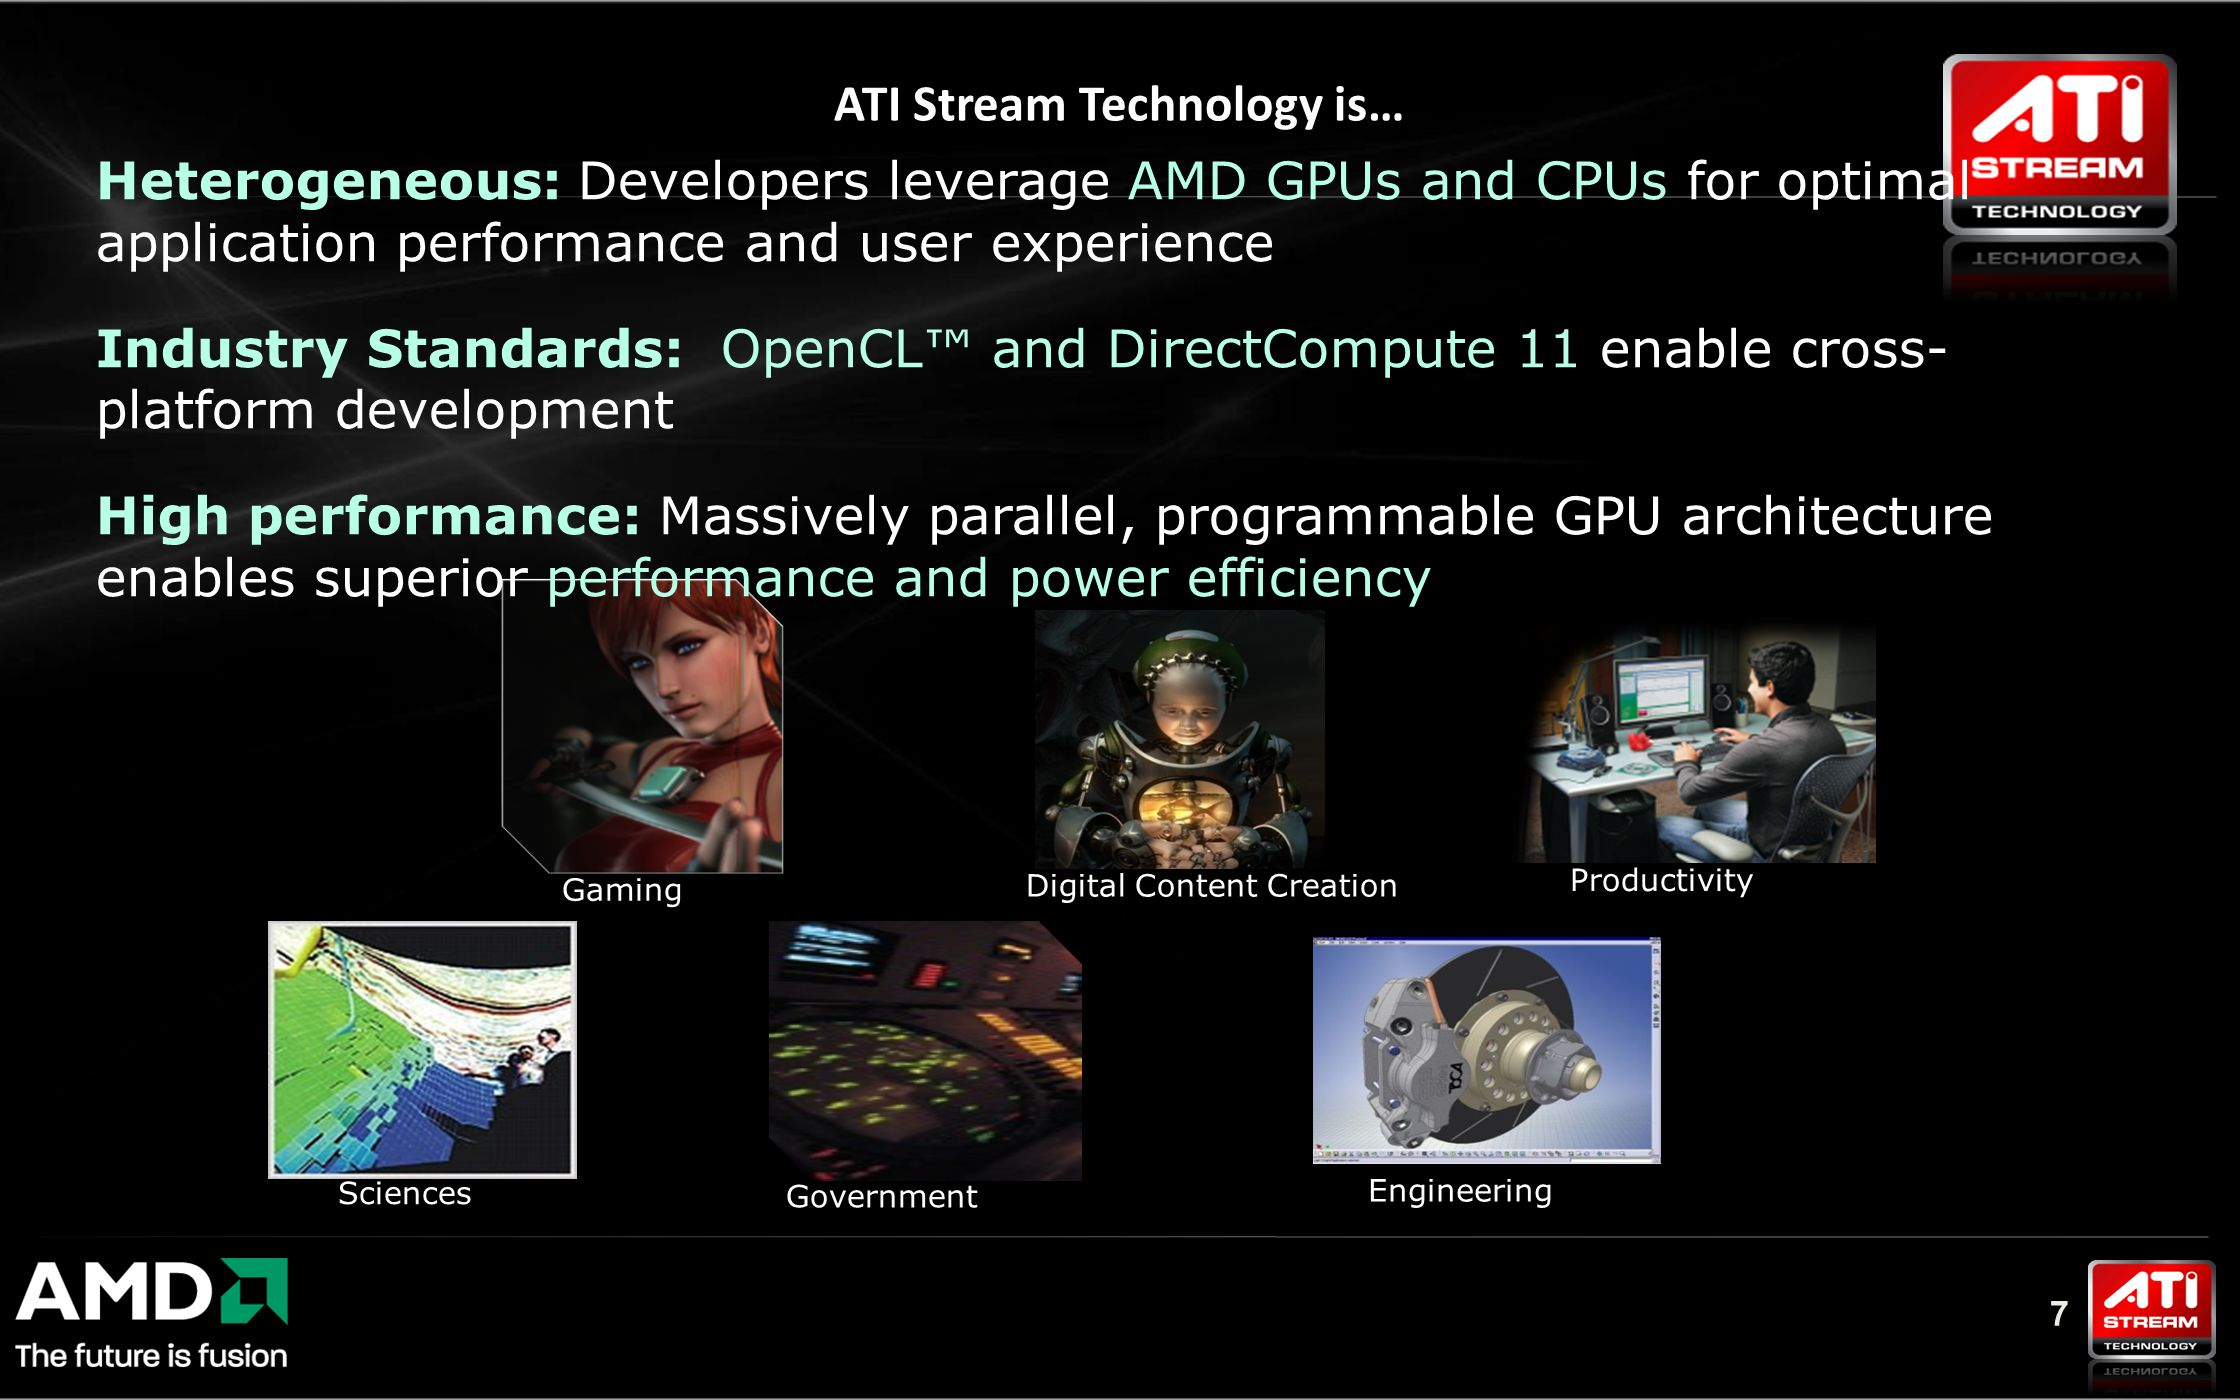 7 Digital Content Creation ATI Stream Technology is… Engineering Sciences Government Gaming Productivity Heterogeneous: Developers leverage AMD GPUs and CPUs for optimal application performance and user experience Industry Standards: OpenCL™ and DirectCompute 11 enable cross- platform development High performance: Massively parallel, programmable GPU architecture enables superior performance and power efficiency